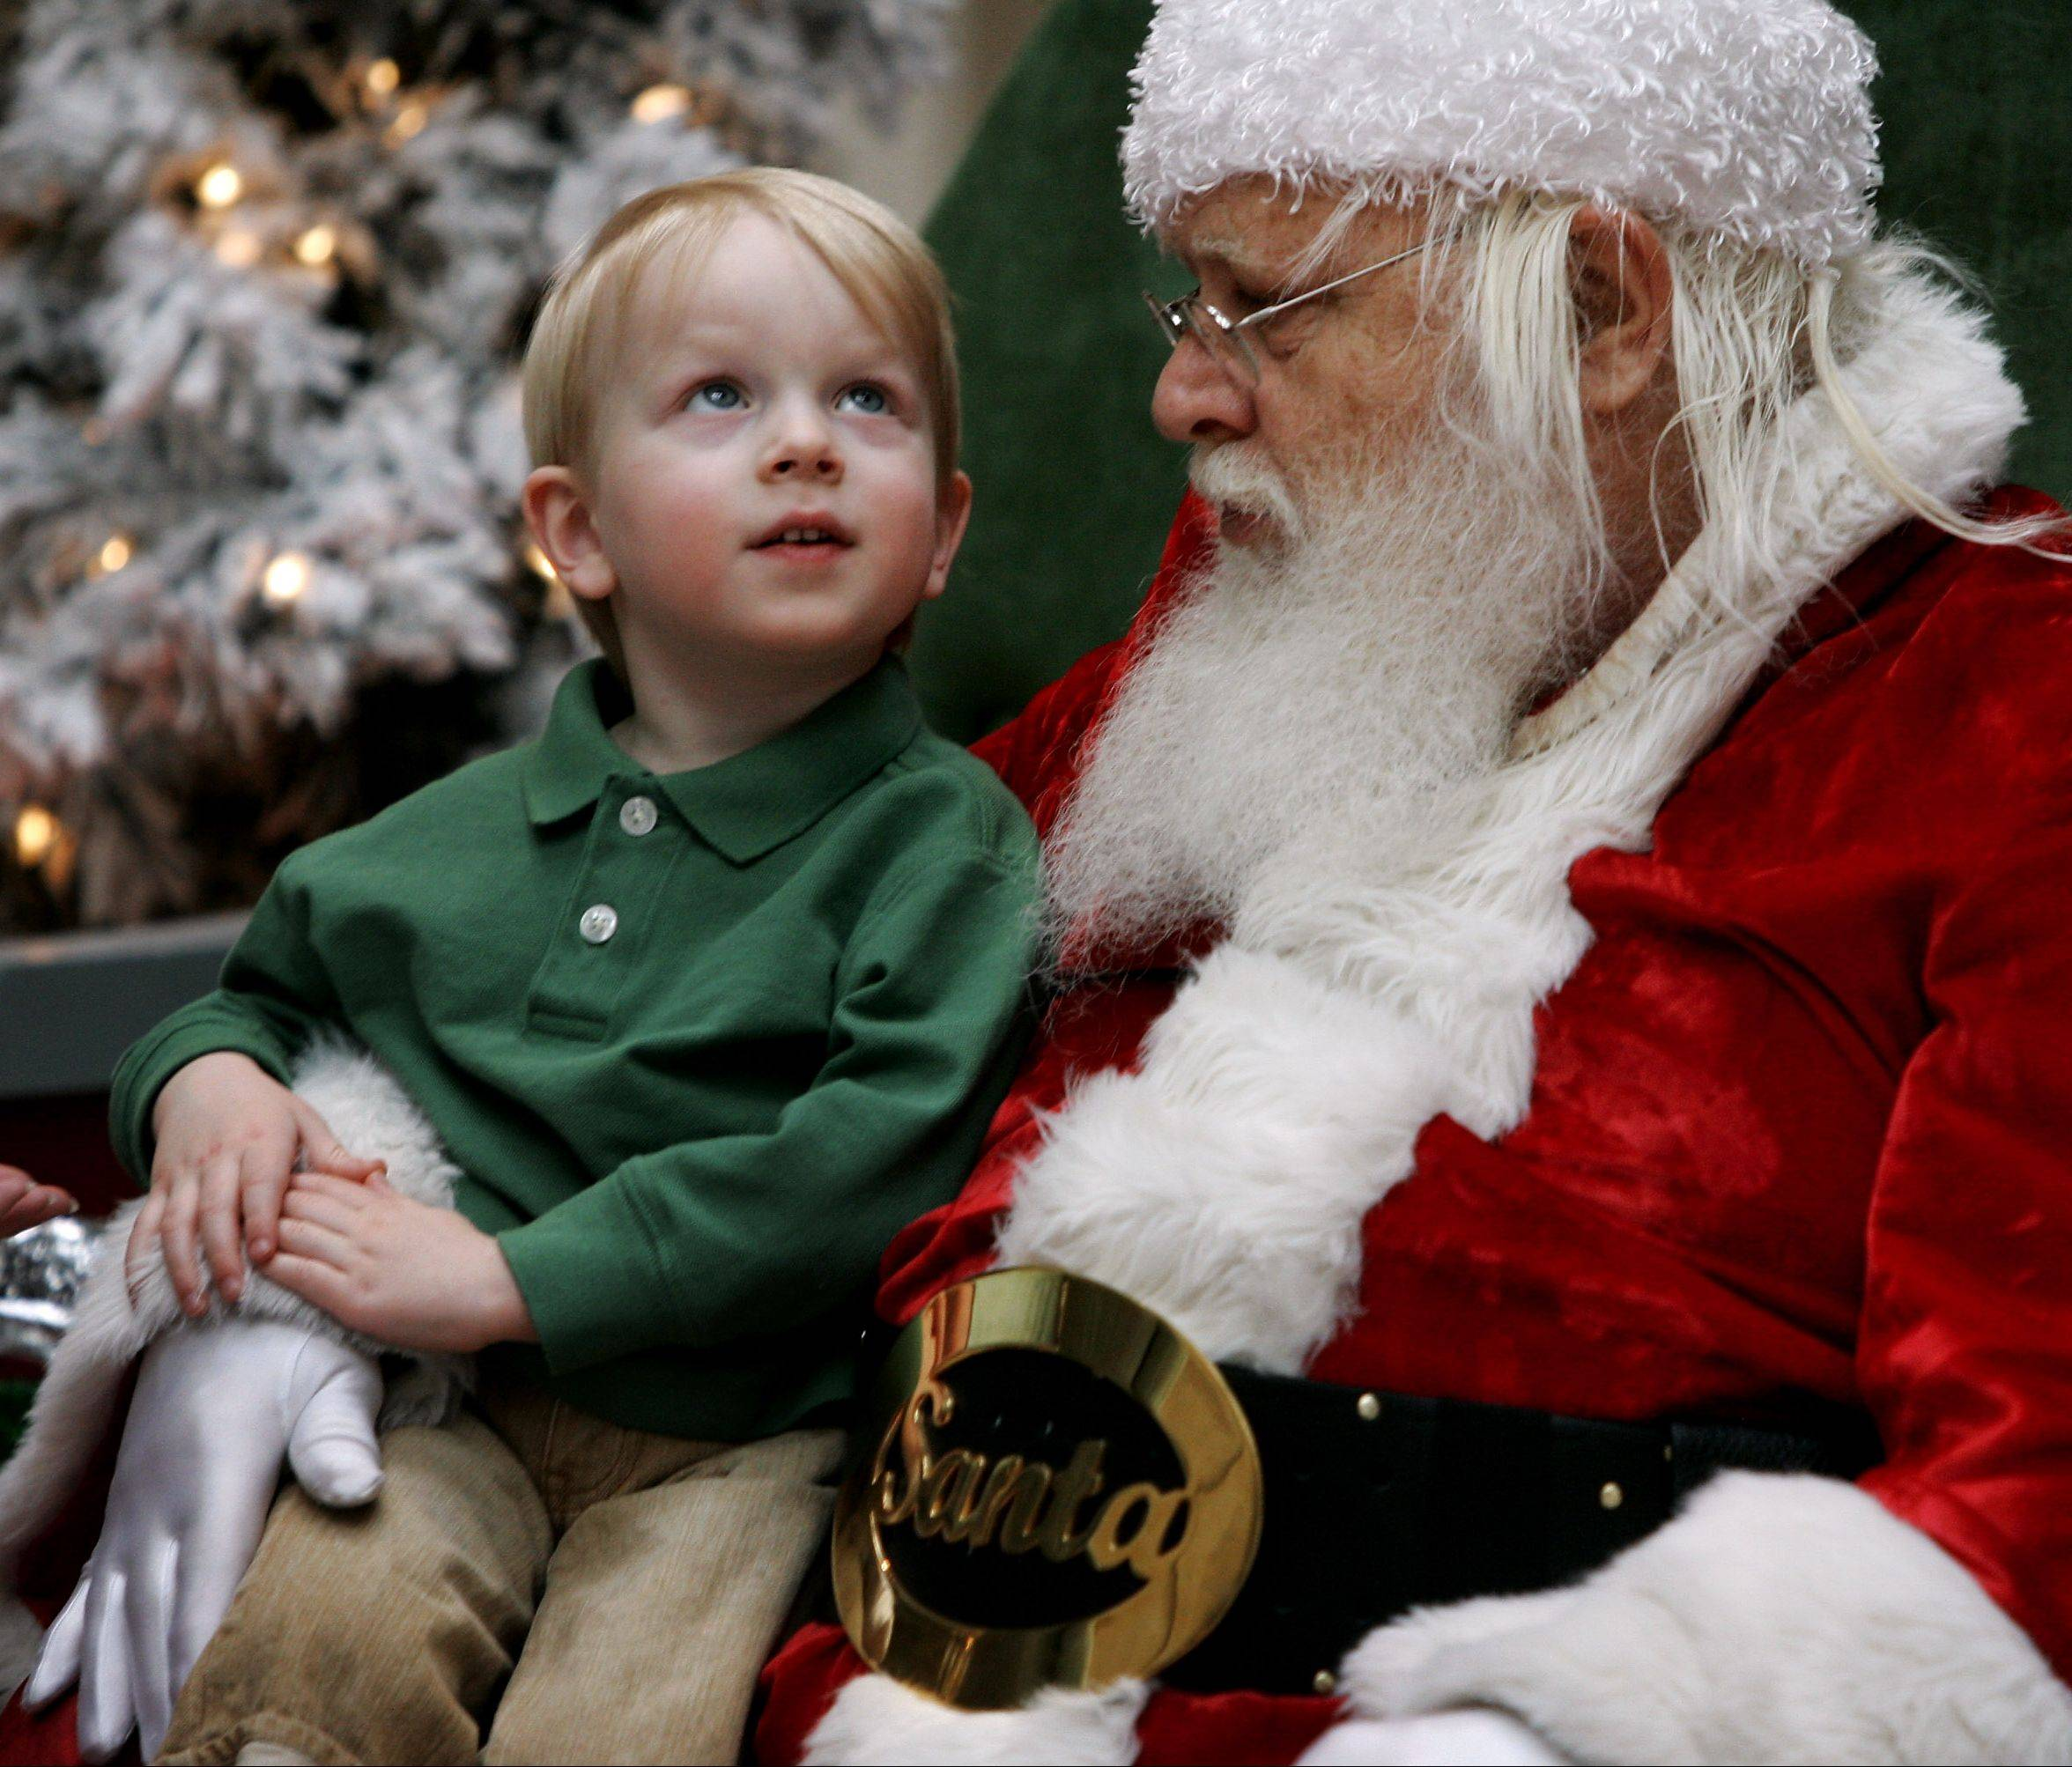 Santa Claus listens to Owen Arnold, 3, of Riverwoods as he tells him what he wants for Christmas at Westfield Hawthorn Shopping Center in Vernon Hills. Avoid shooting the standard picture of everyone smiling at the camera and wait for the better moment when children interact with Santa Claus and capture a memory that will last much longer.